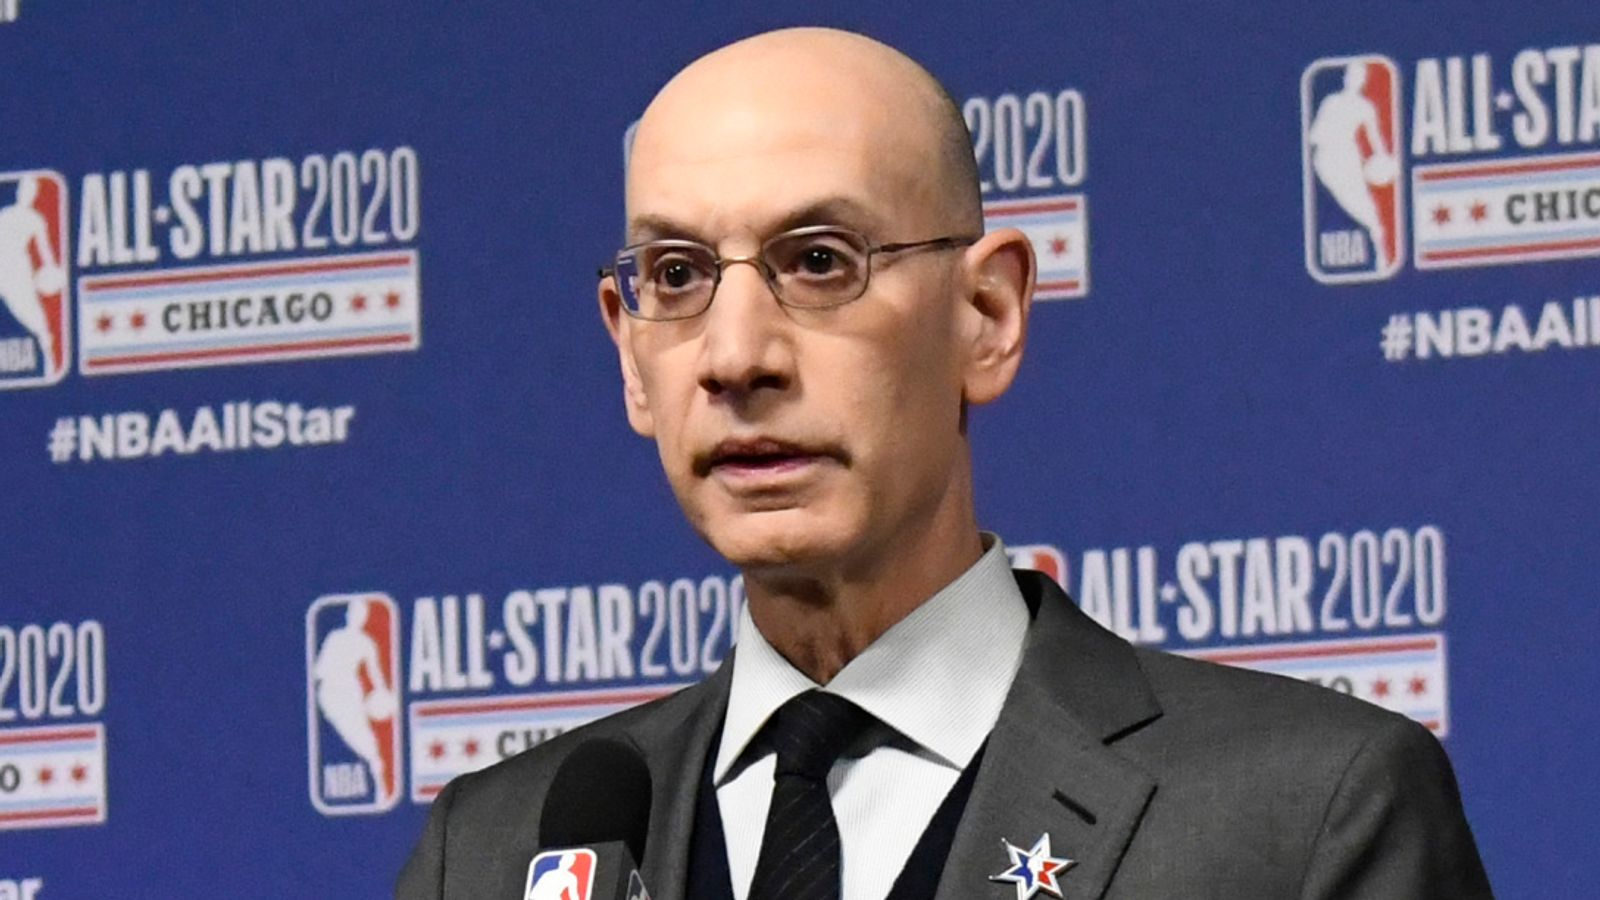 NBA commissioner Adam Silver says vaccines will not mandatory for players, NBA logo not changing